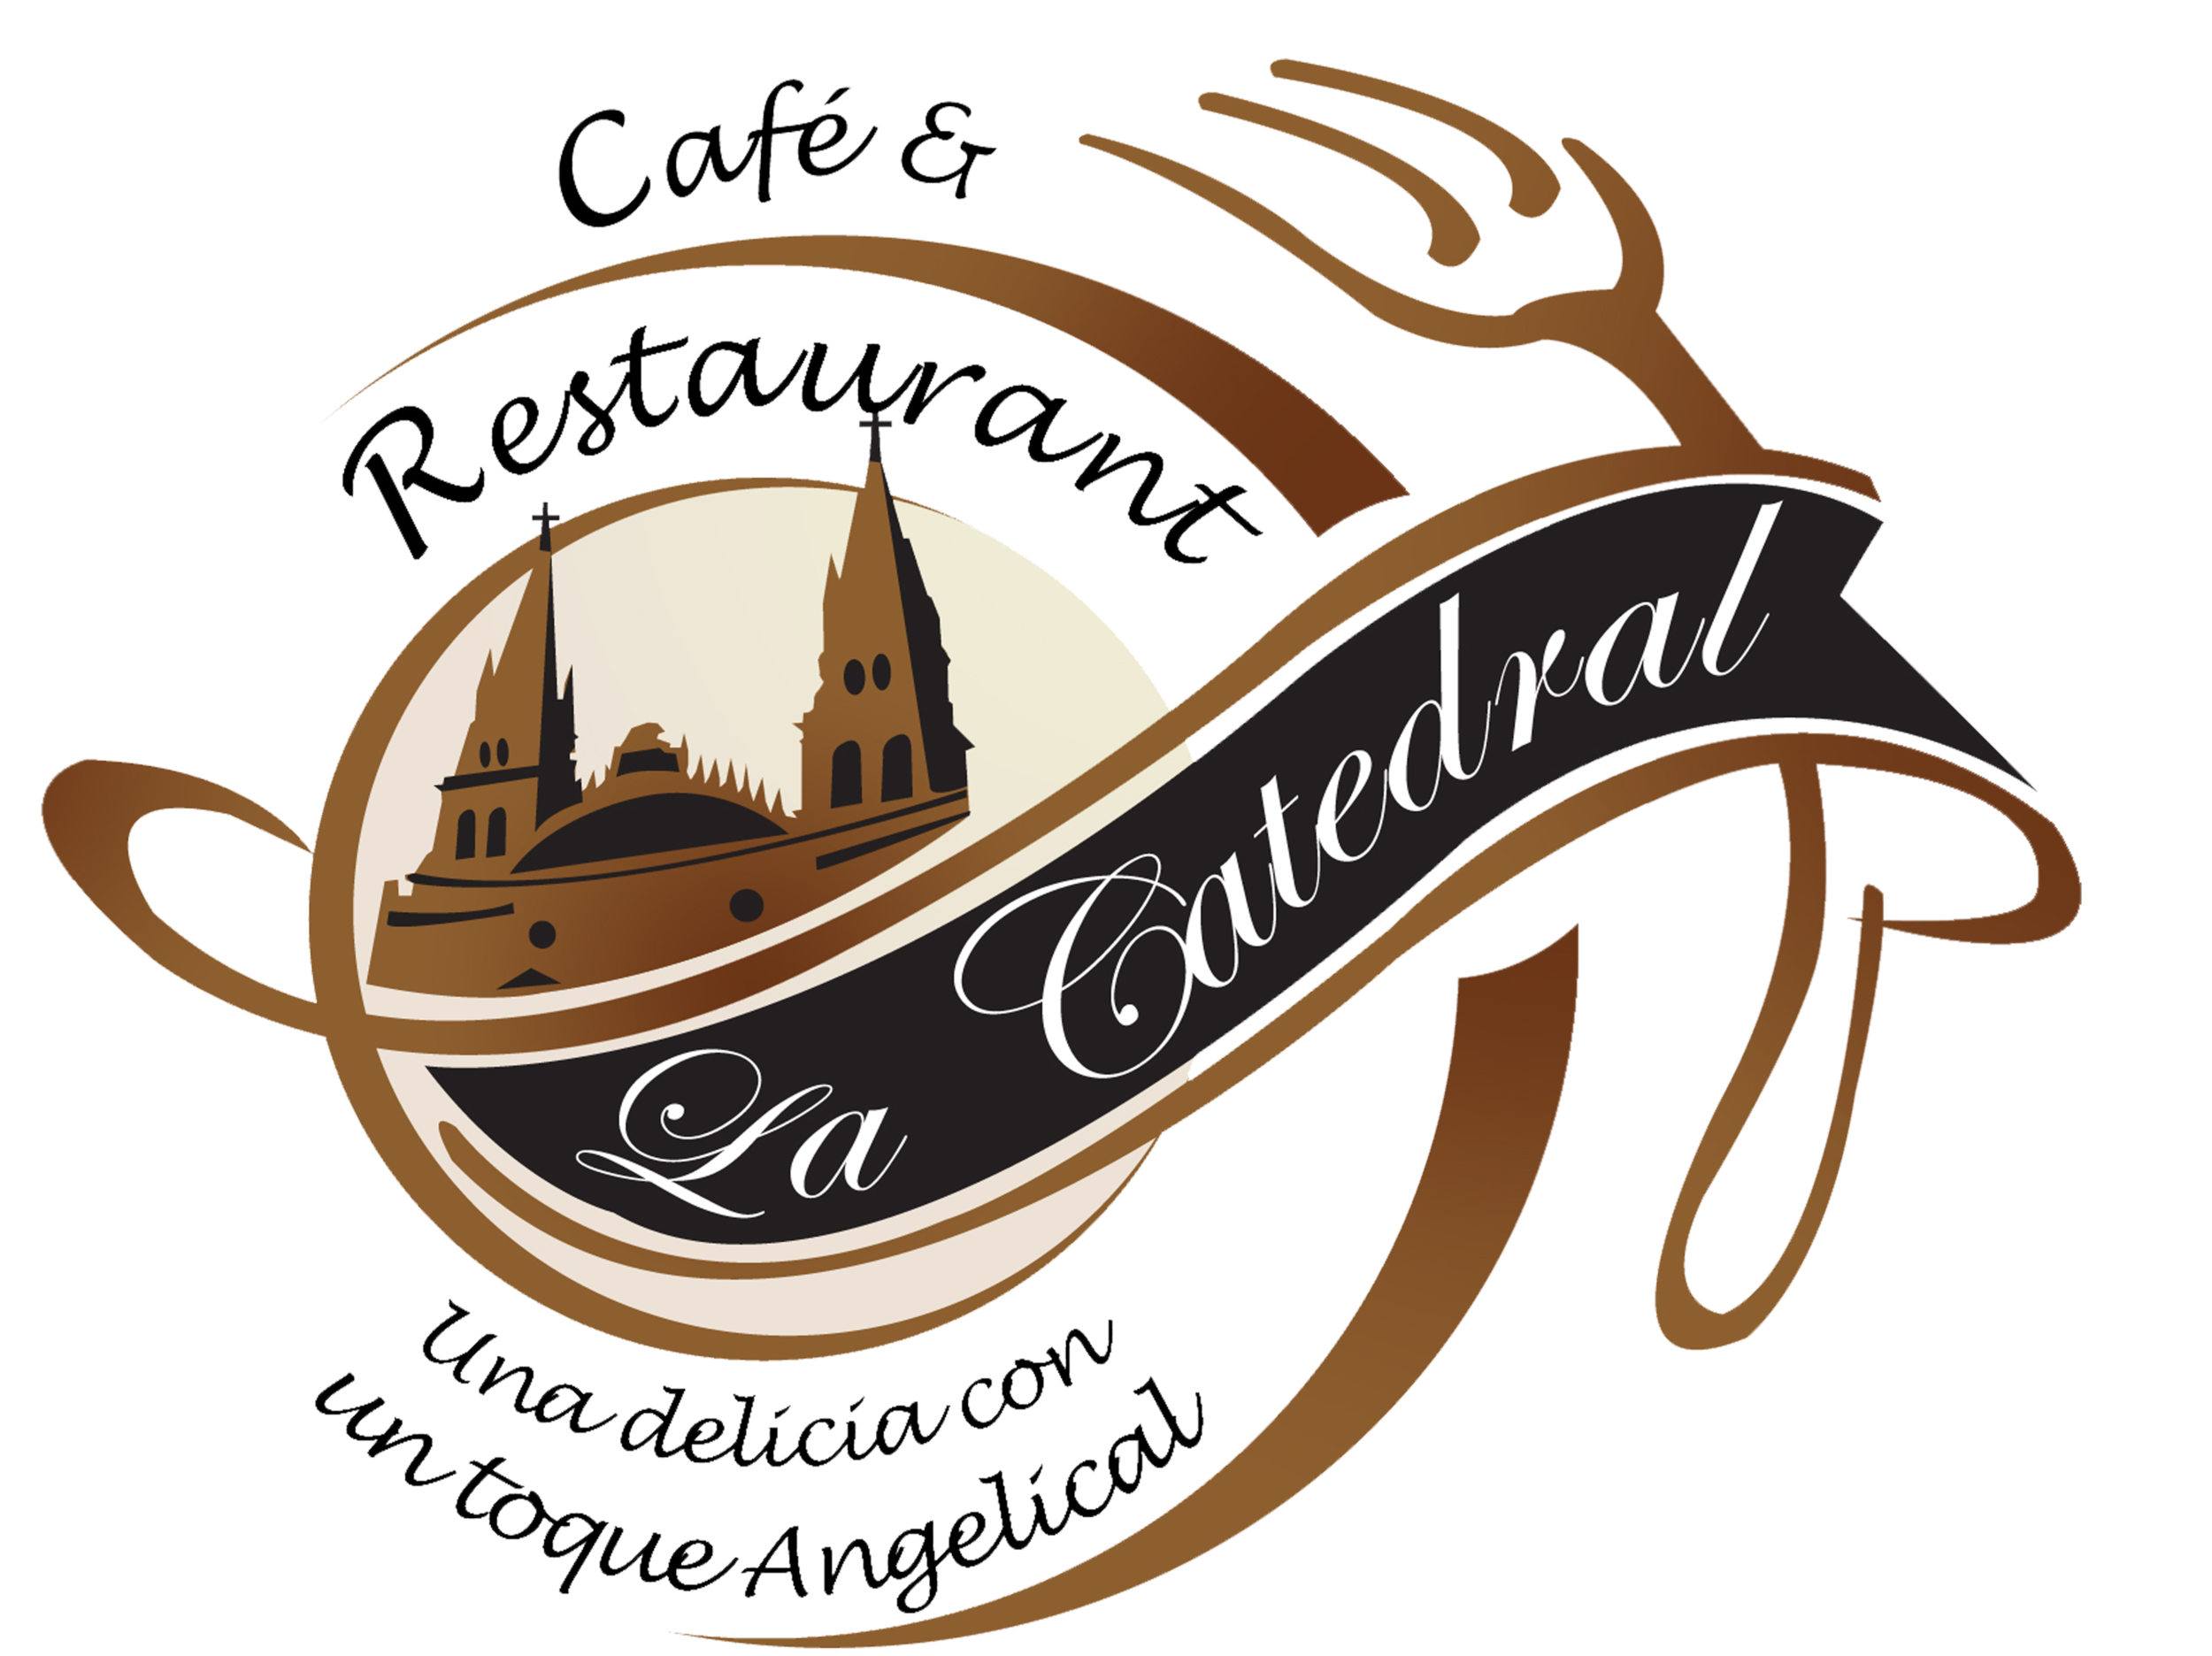 LOGO CATEDRAL refresh.png